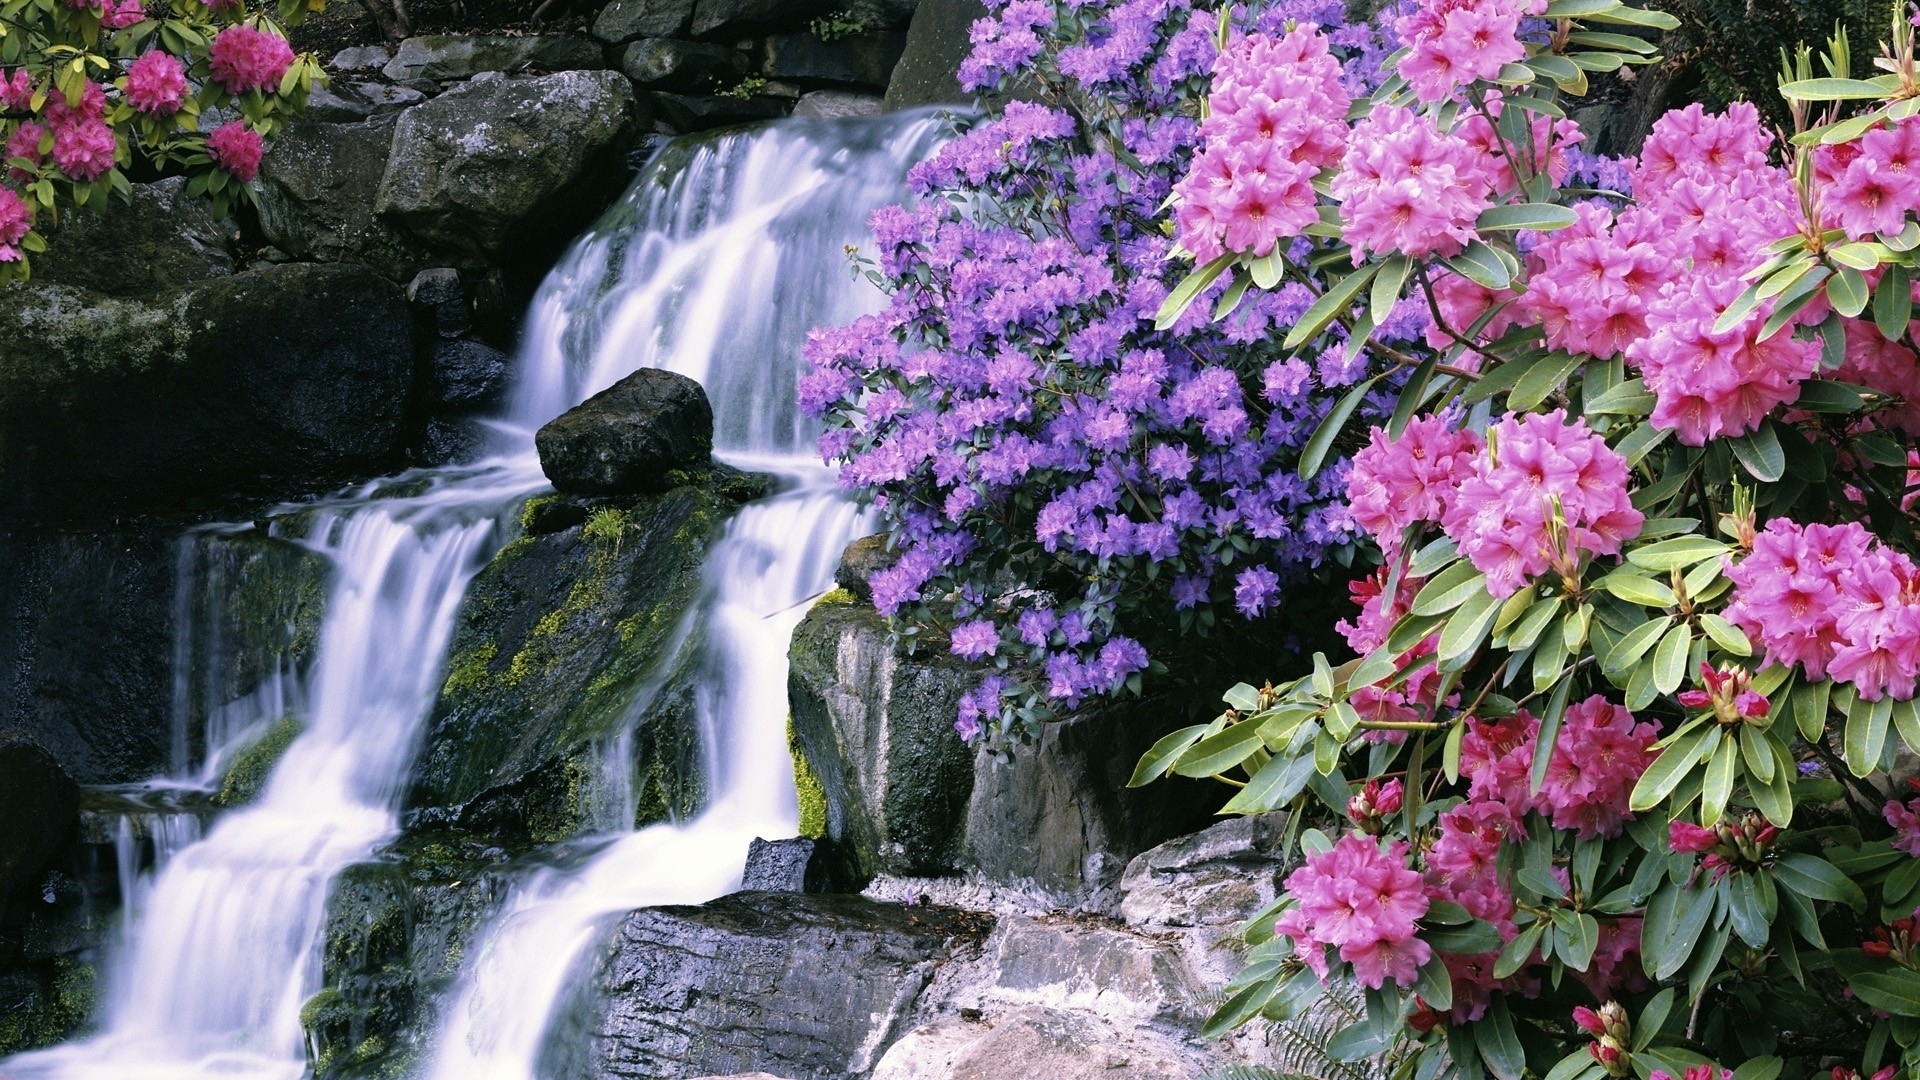 most beautiful waterfalls with flowers | download 1920x1080 flowers